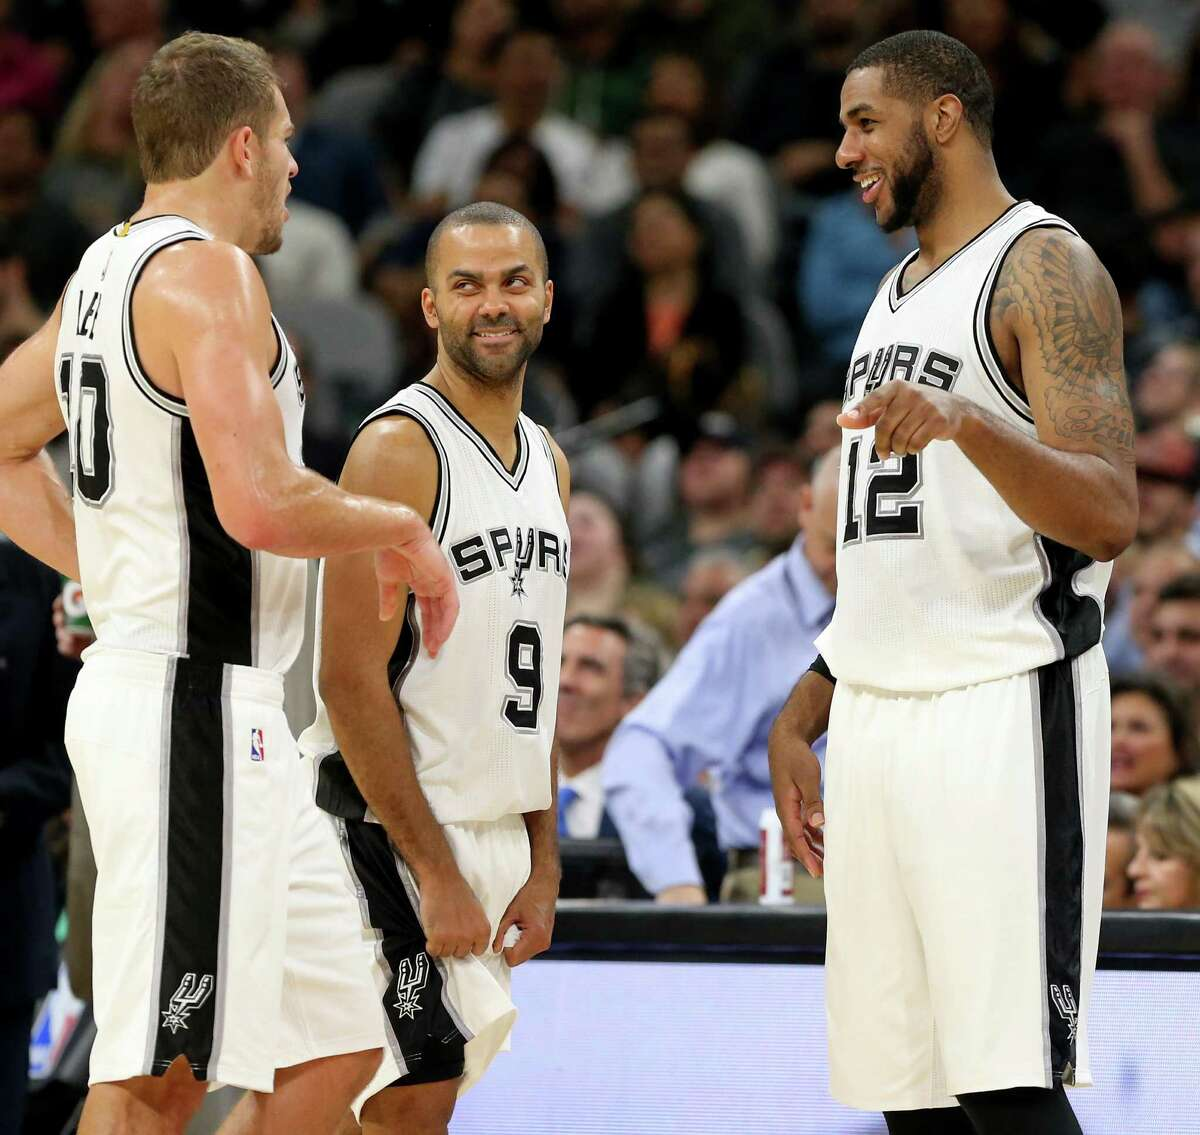 San Antonio Spurs' David Lee (from left), Tony Parker, and LaMarcus Aldridge talk during a second half timeout against the Miami Heat Monday Nov. 14, 2016 at the AT&T Center. The Spurs won 94-90.